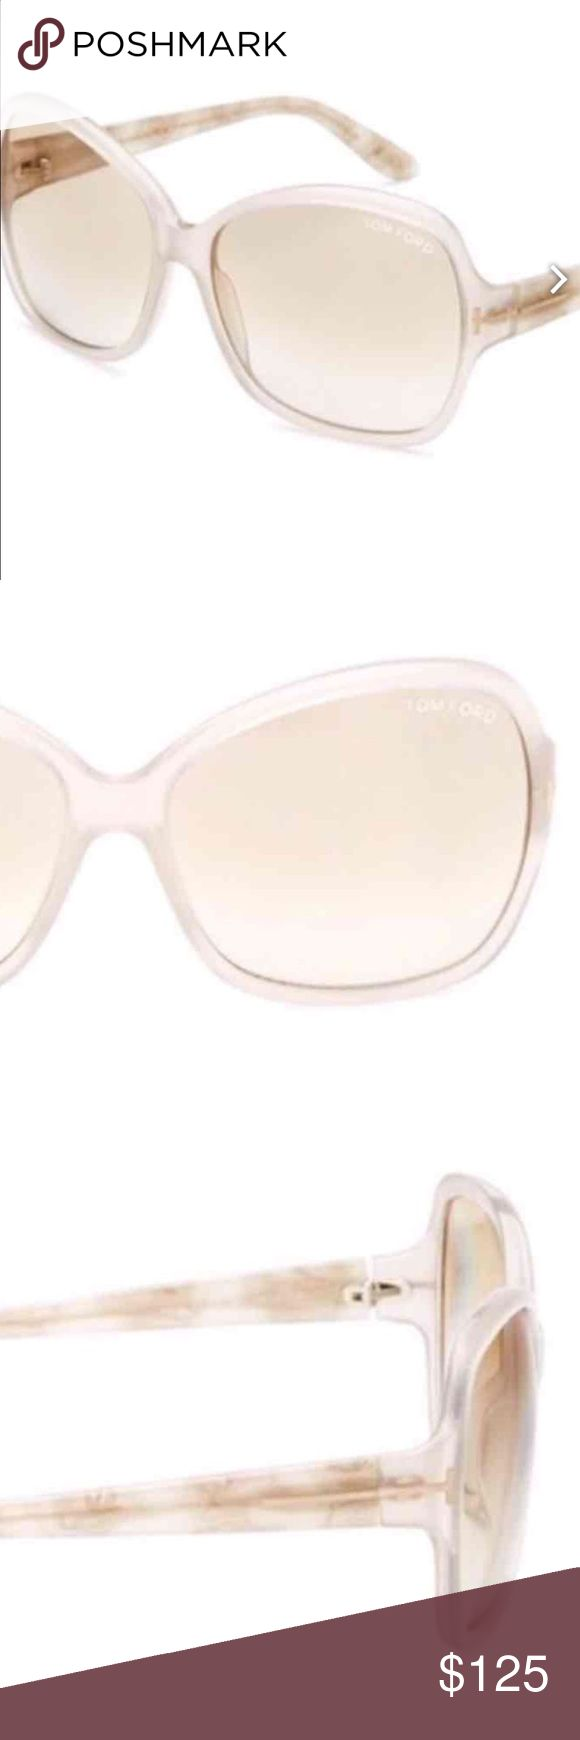 Beige/Clear Tom Ford sunnies❤️ Authentic Tom Ford sunnies! Lucite with a rose colored lense. The are polarized as well. They have been warn only 3 times! They come with case and dust cloth to clean lenses. Mint condition. A sexy oversized look. Tom Ford Accessories Glasses